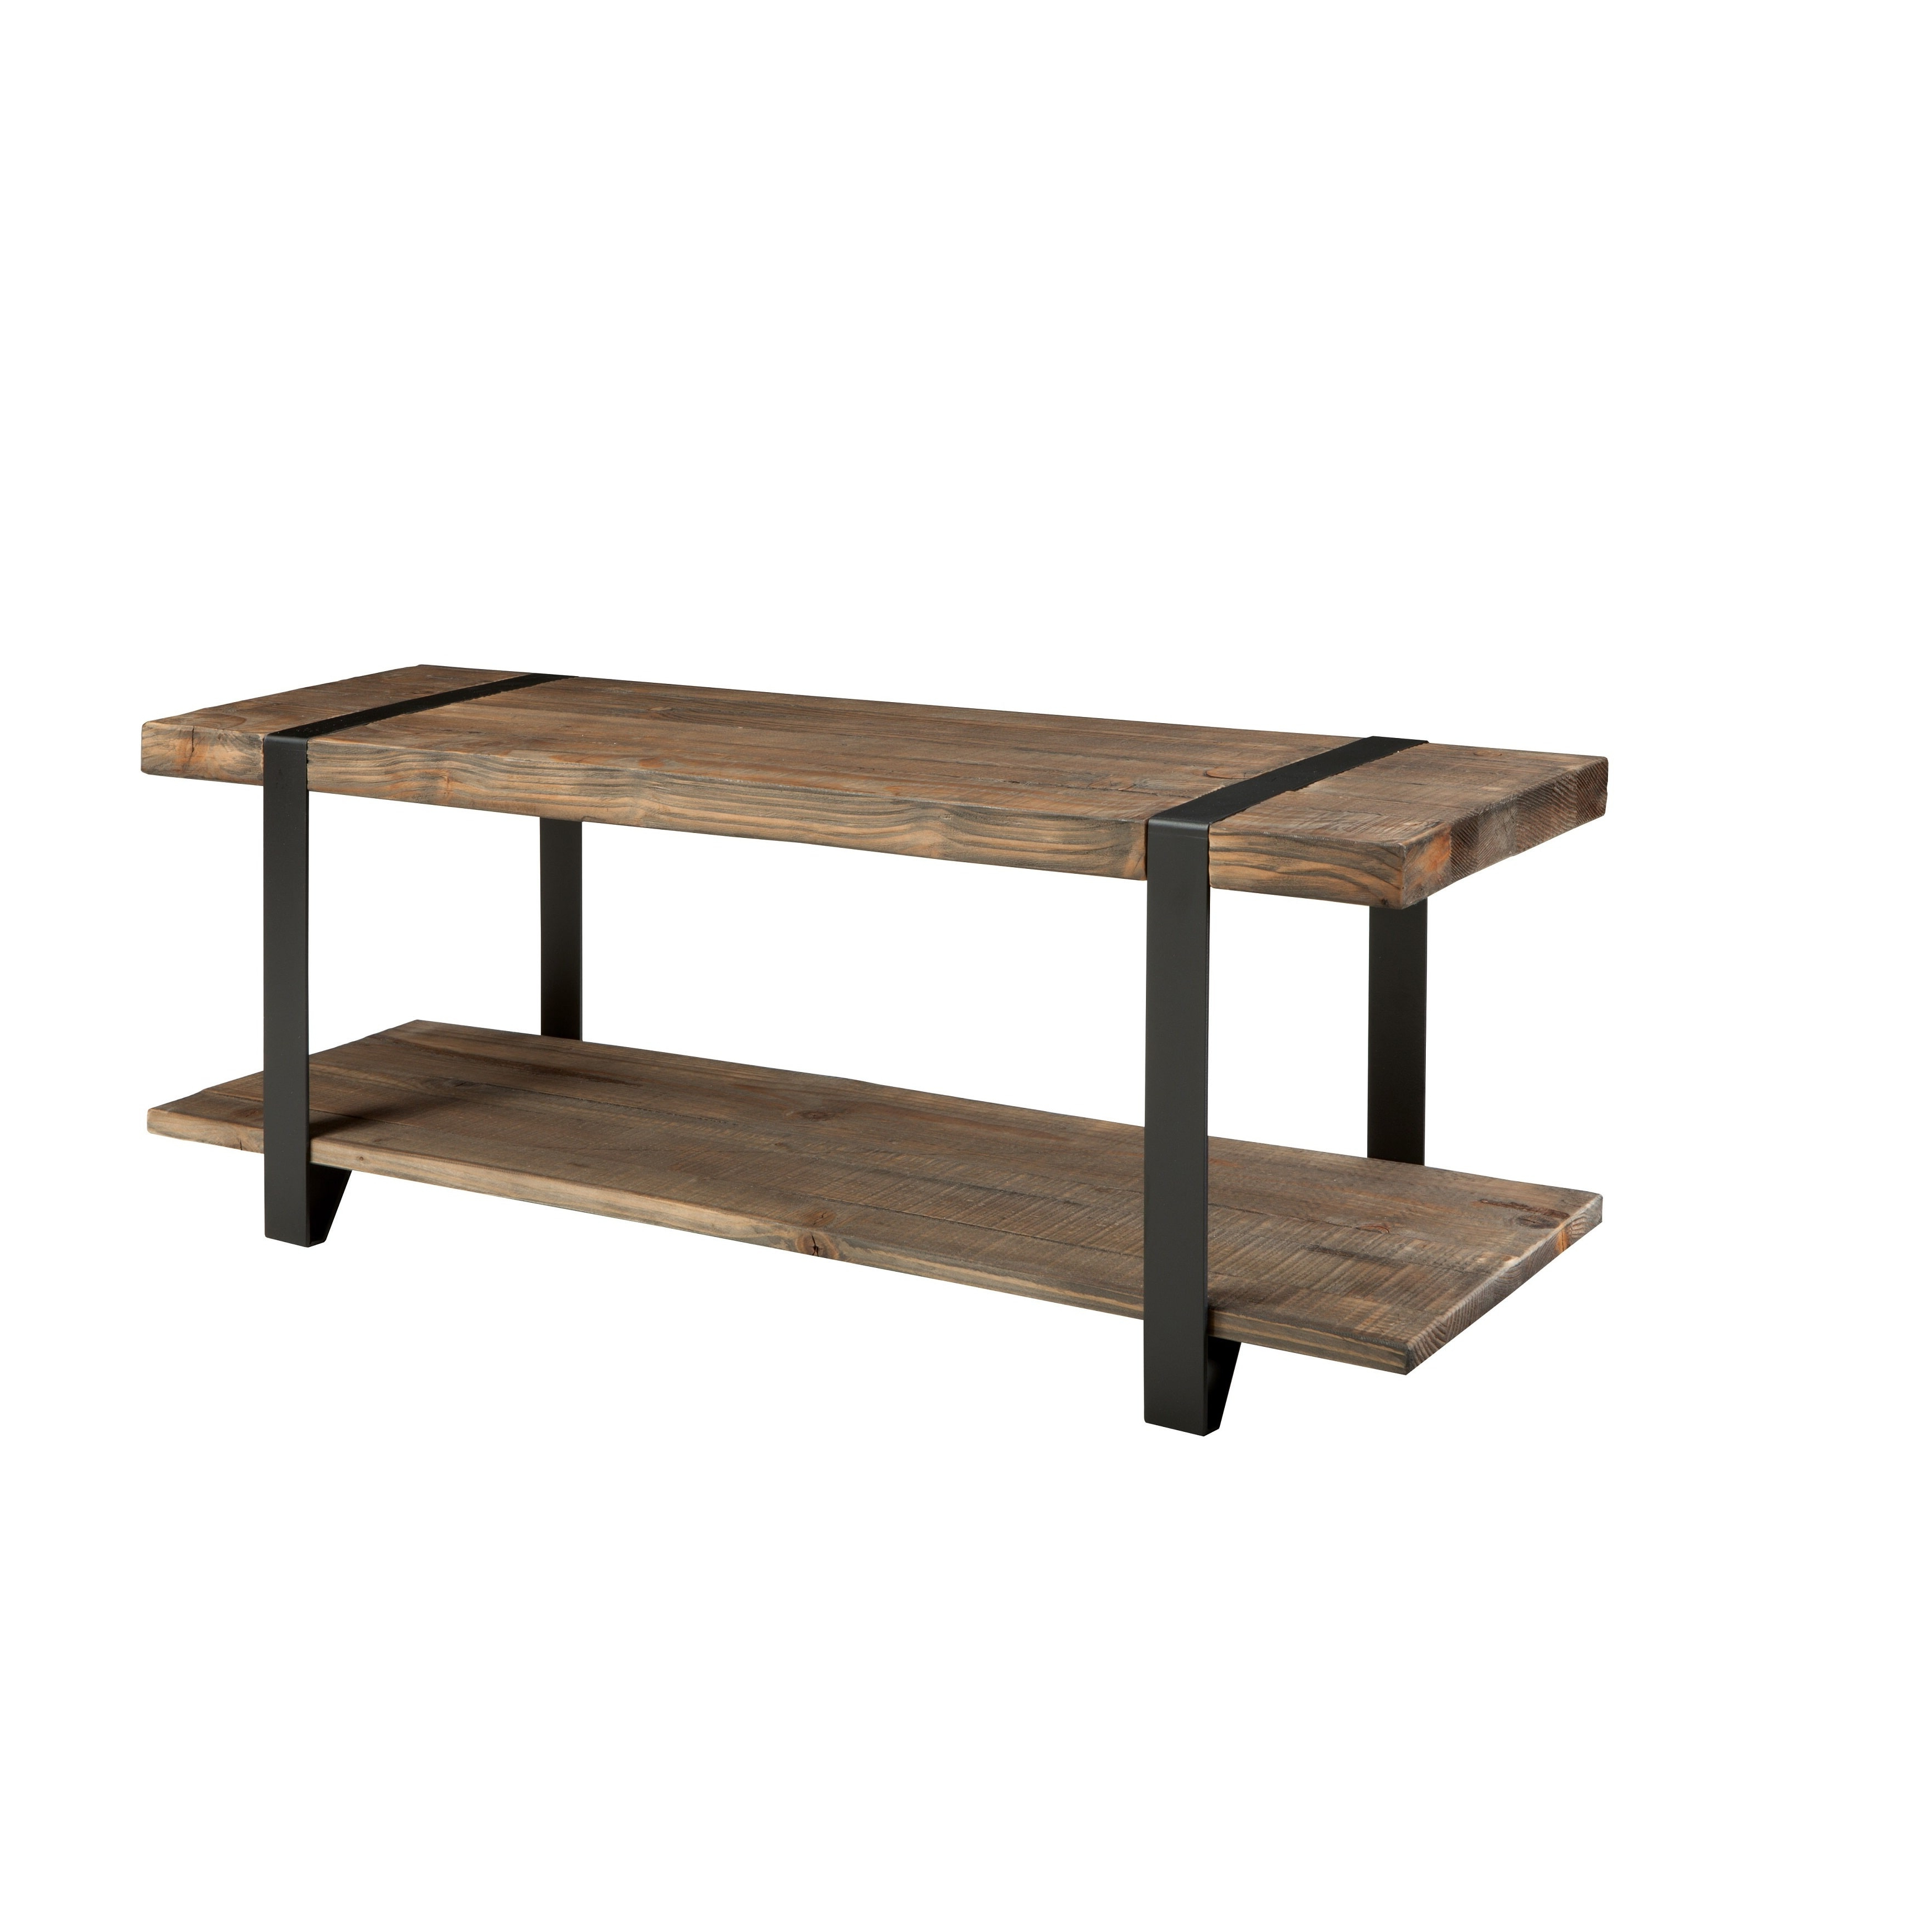 Famous Carbon Loft Kenyon Natural Rustic Coffee Tables For Bolton Furniture Carbon Loft Kenyon Natural Reclaimed Wood (View 14 of 20)